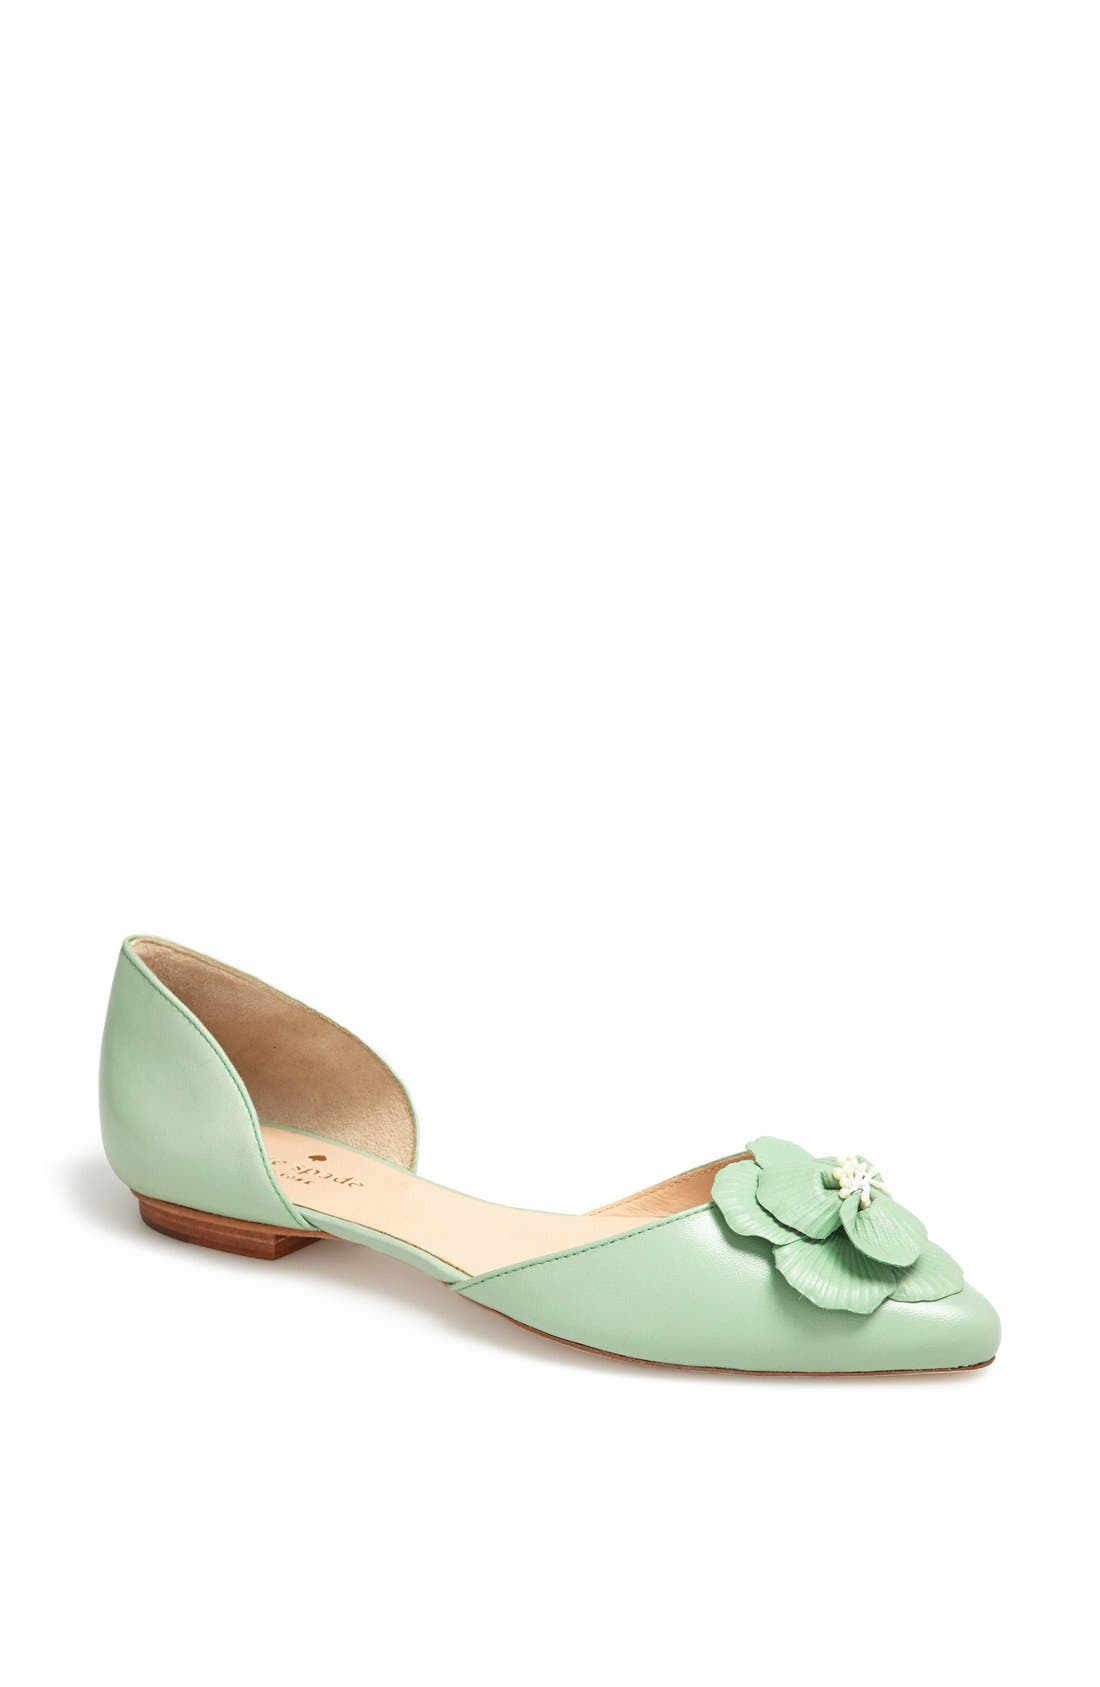 Alternate Image 1 Selected - kate spade new york 'elysee' d'Orsay flat